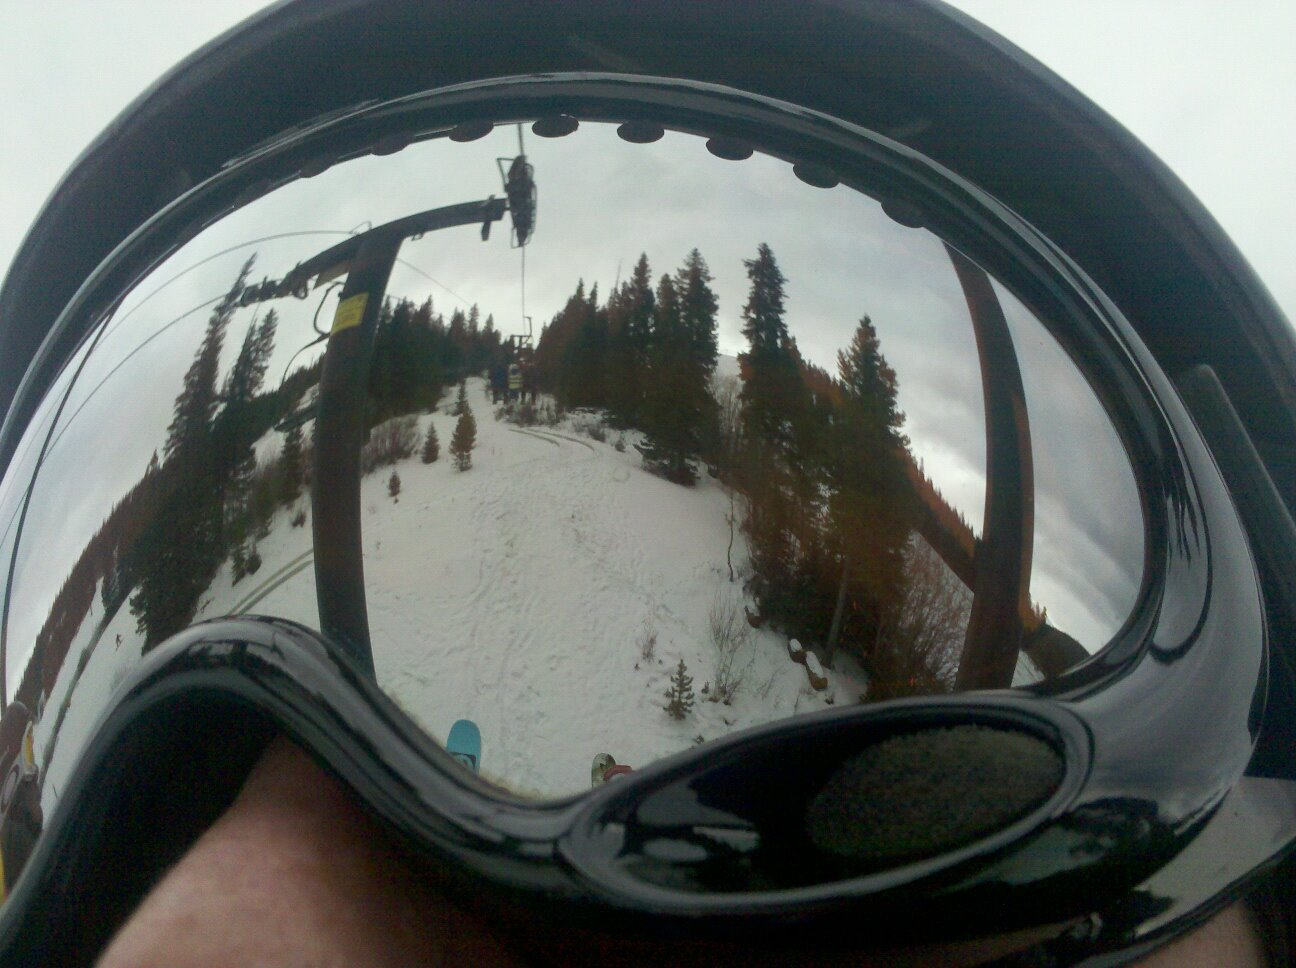 opening day at winterpark